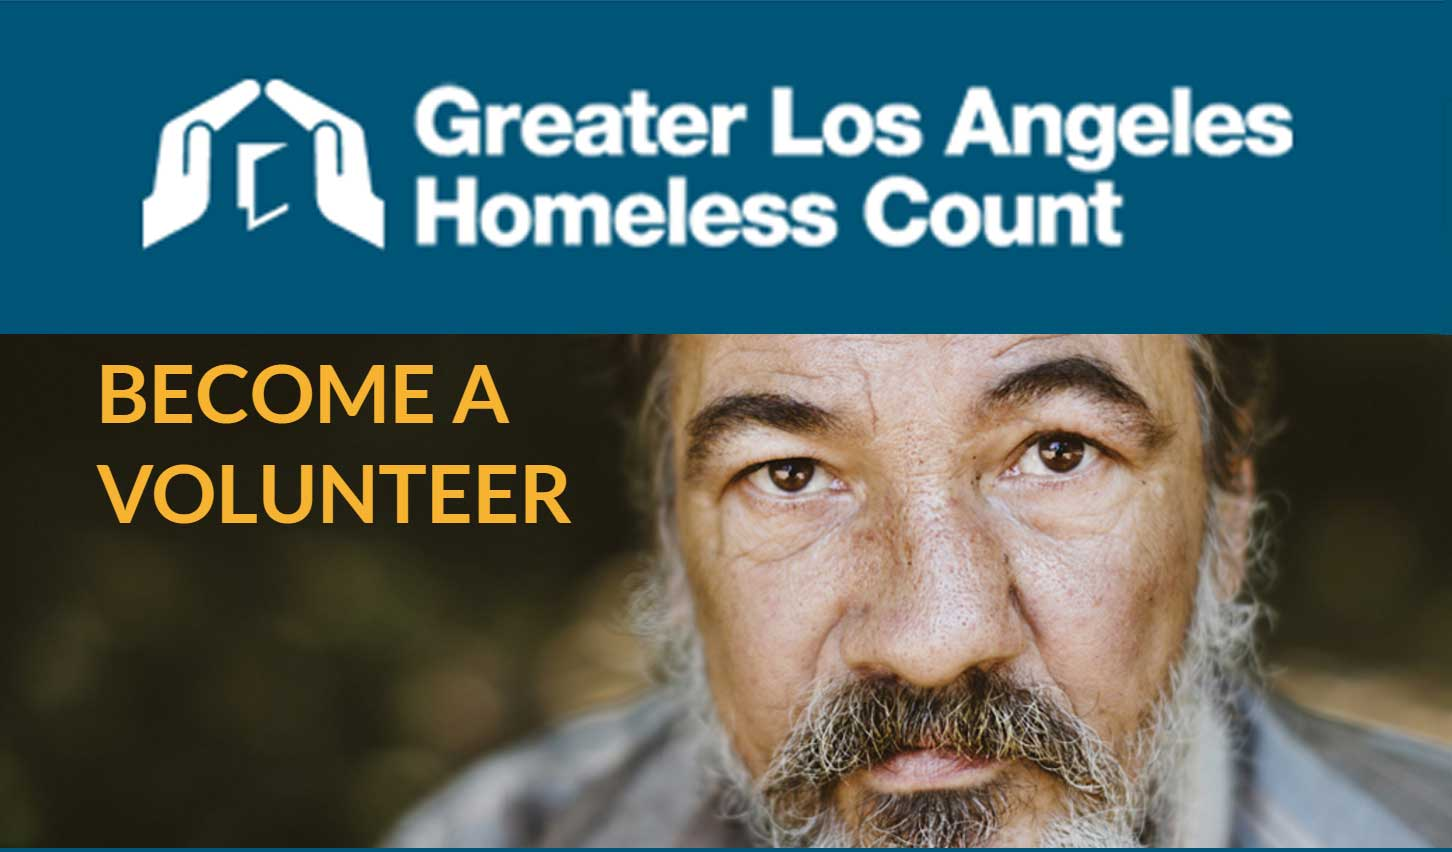 Register Today to be part of the Homeless Count